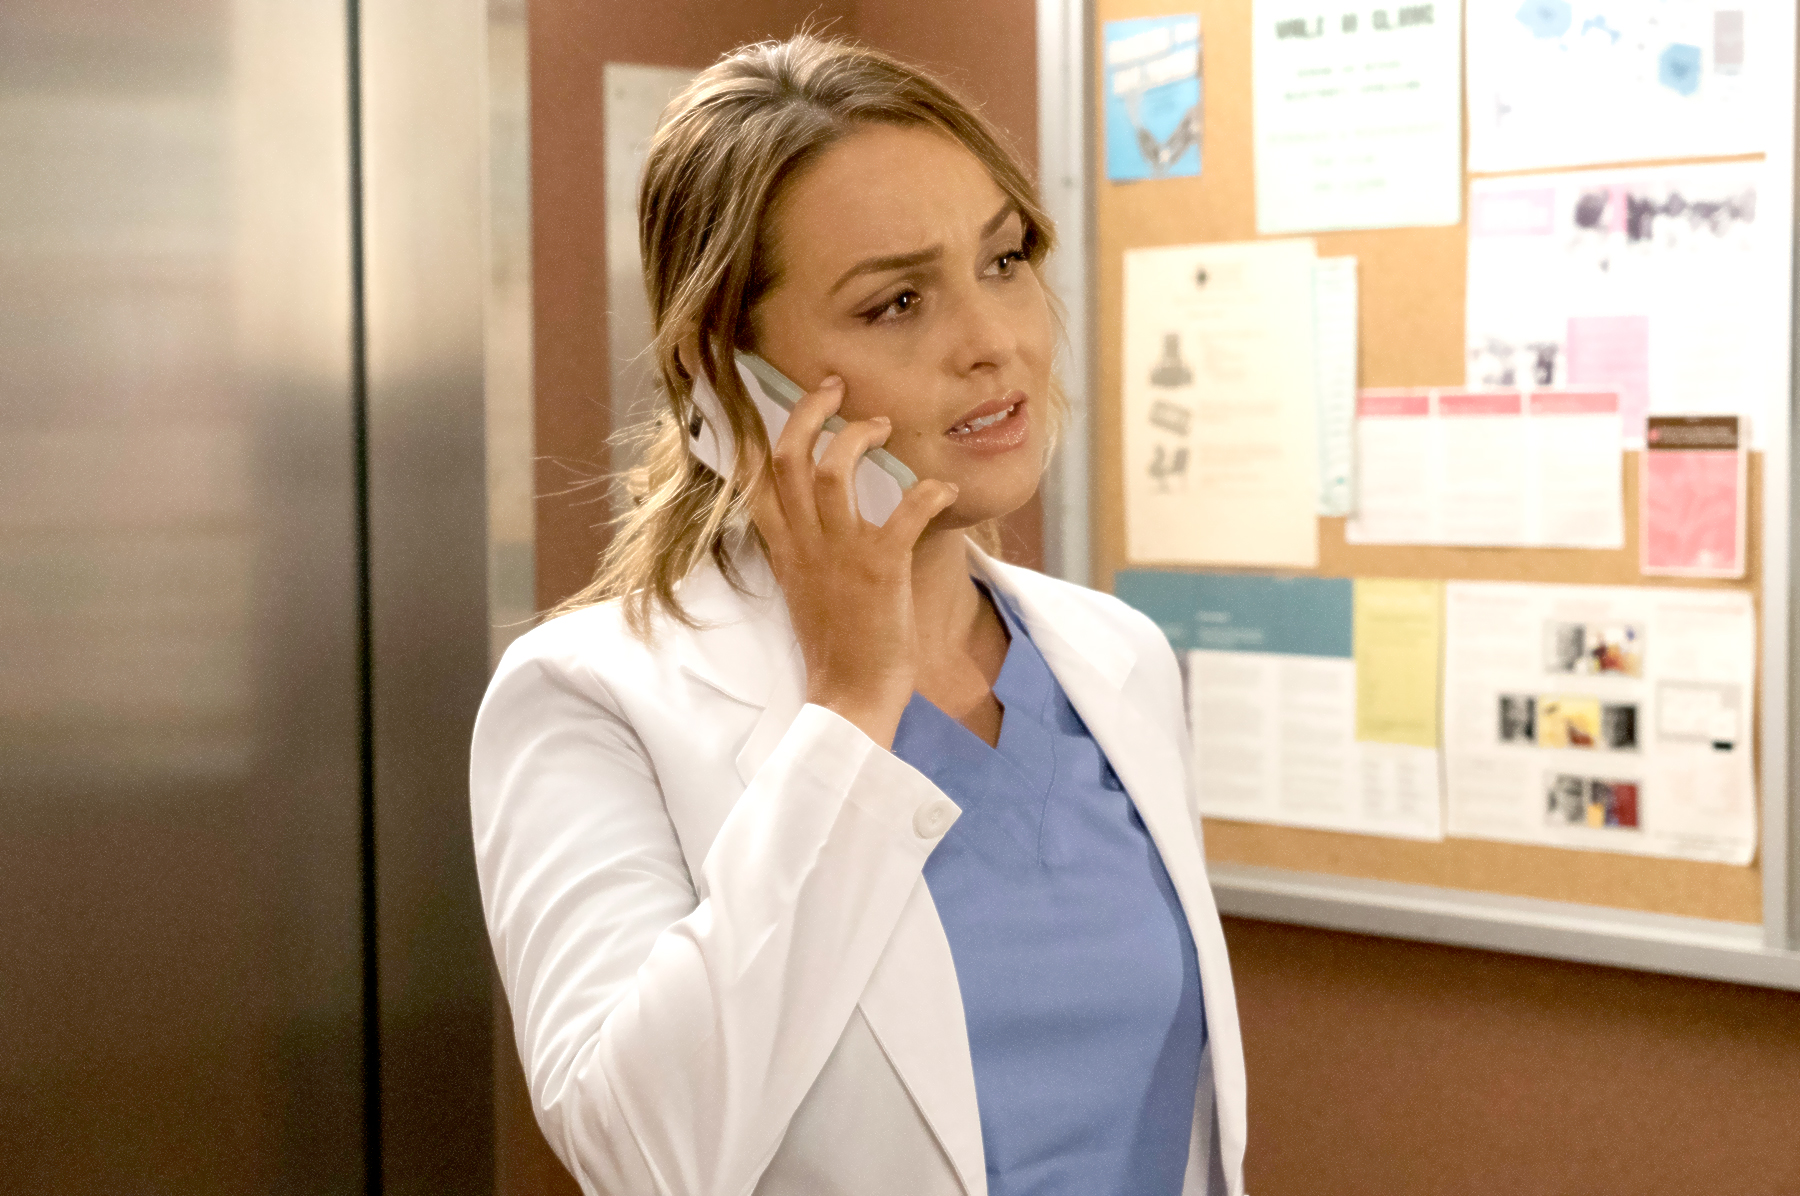 Camilla Luddington on Grey's Anatomy - Camilla Luddington on Grey's Anatomy